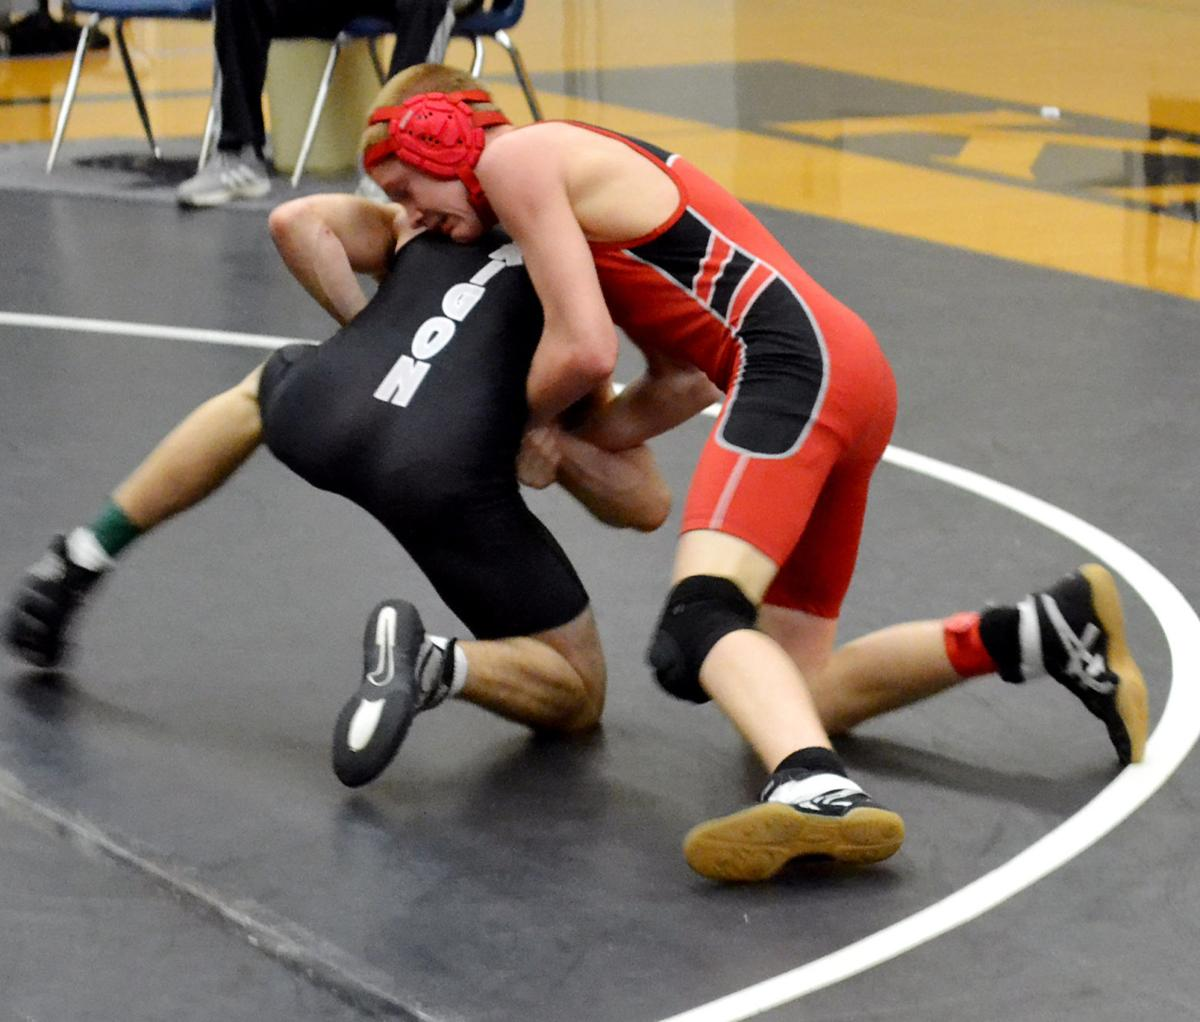 Grant Union wrestlers grapple well at opening meet